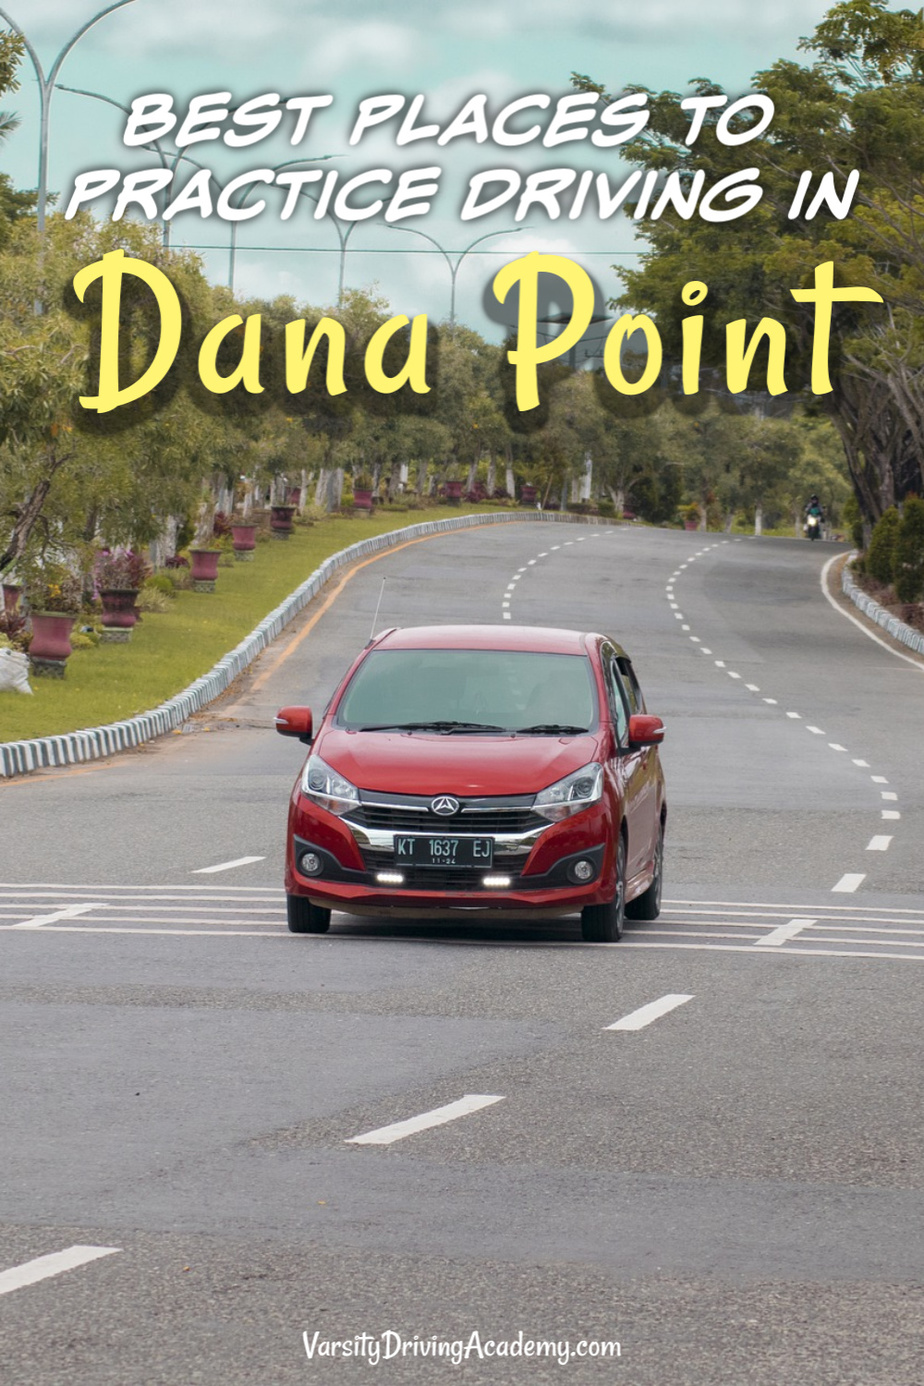 Learning to drive means choosing from a variety of roads to sharpen your driving skills and knowing where to practice driving in Dana Point to stay safe.